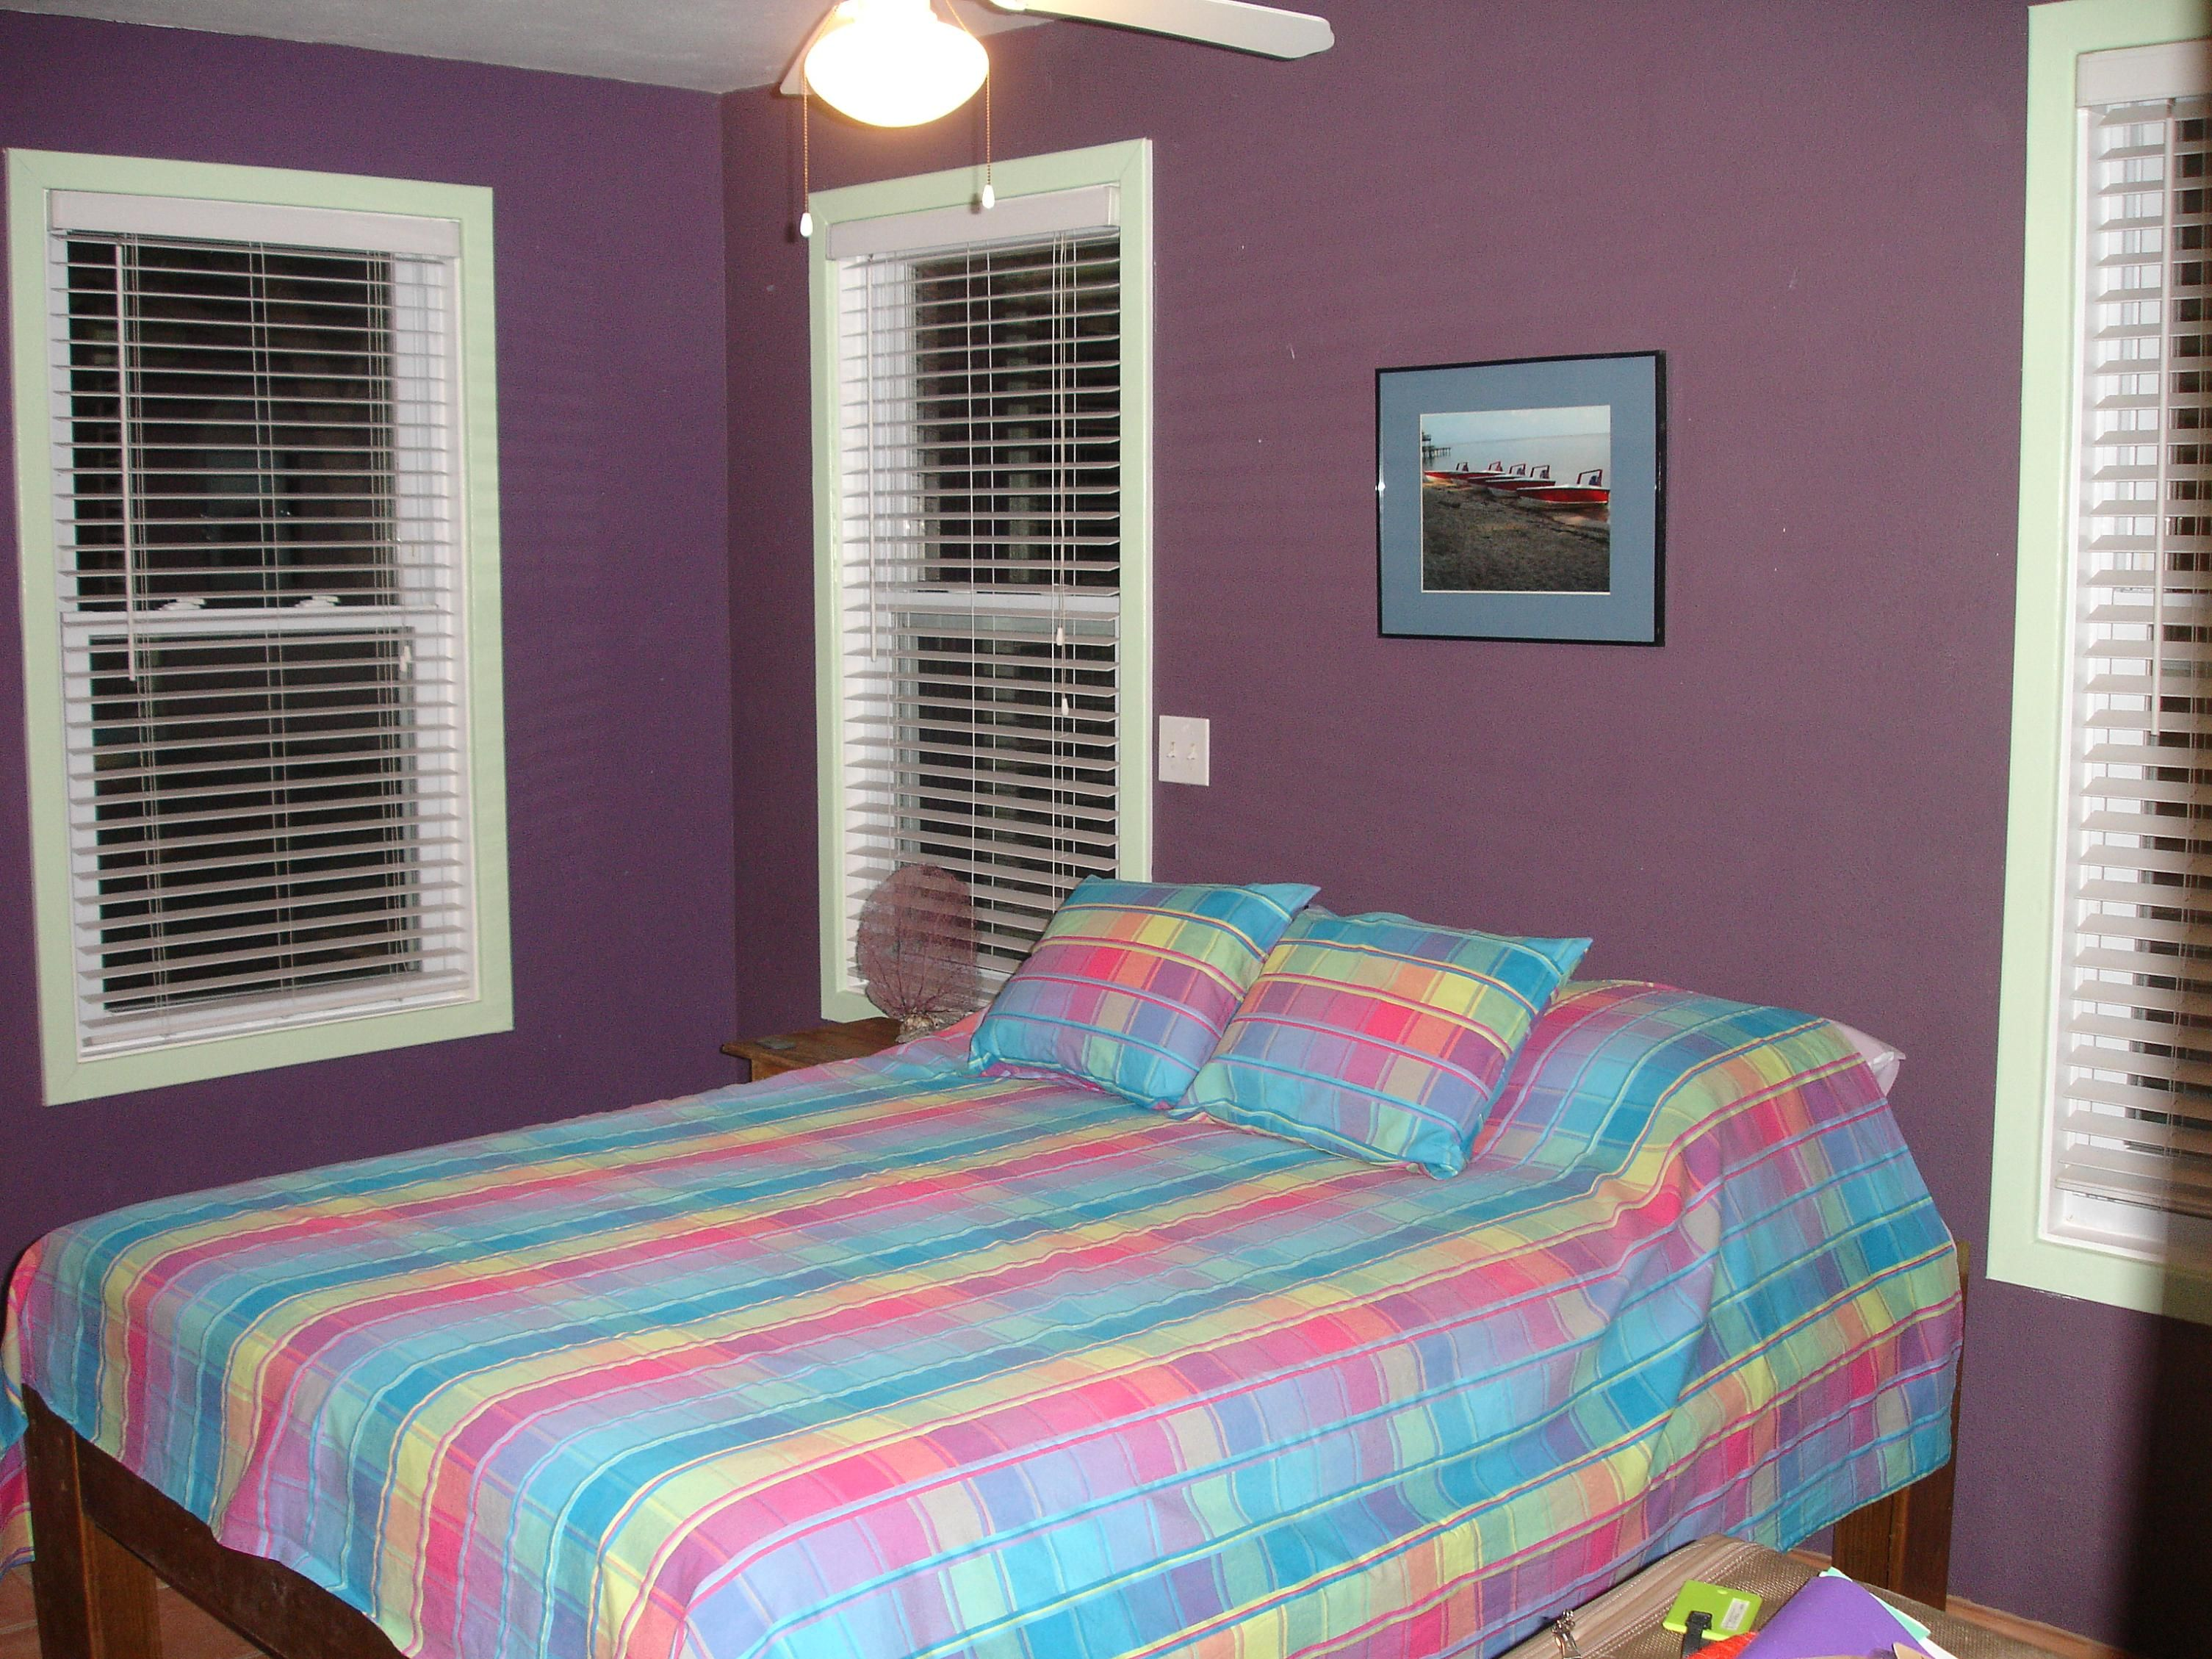 Paint colors for bedrooms purple - What Is The Best Color For Bedroom With Romantis Wall Purple Design Ideas For Best Paint